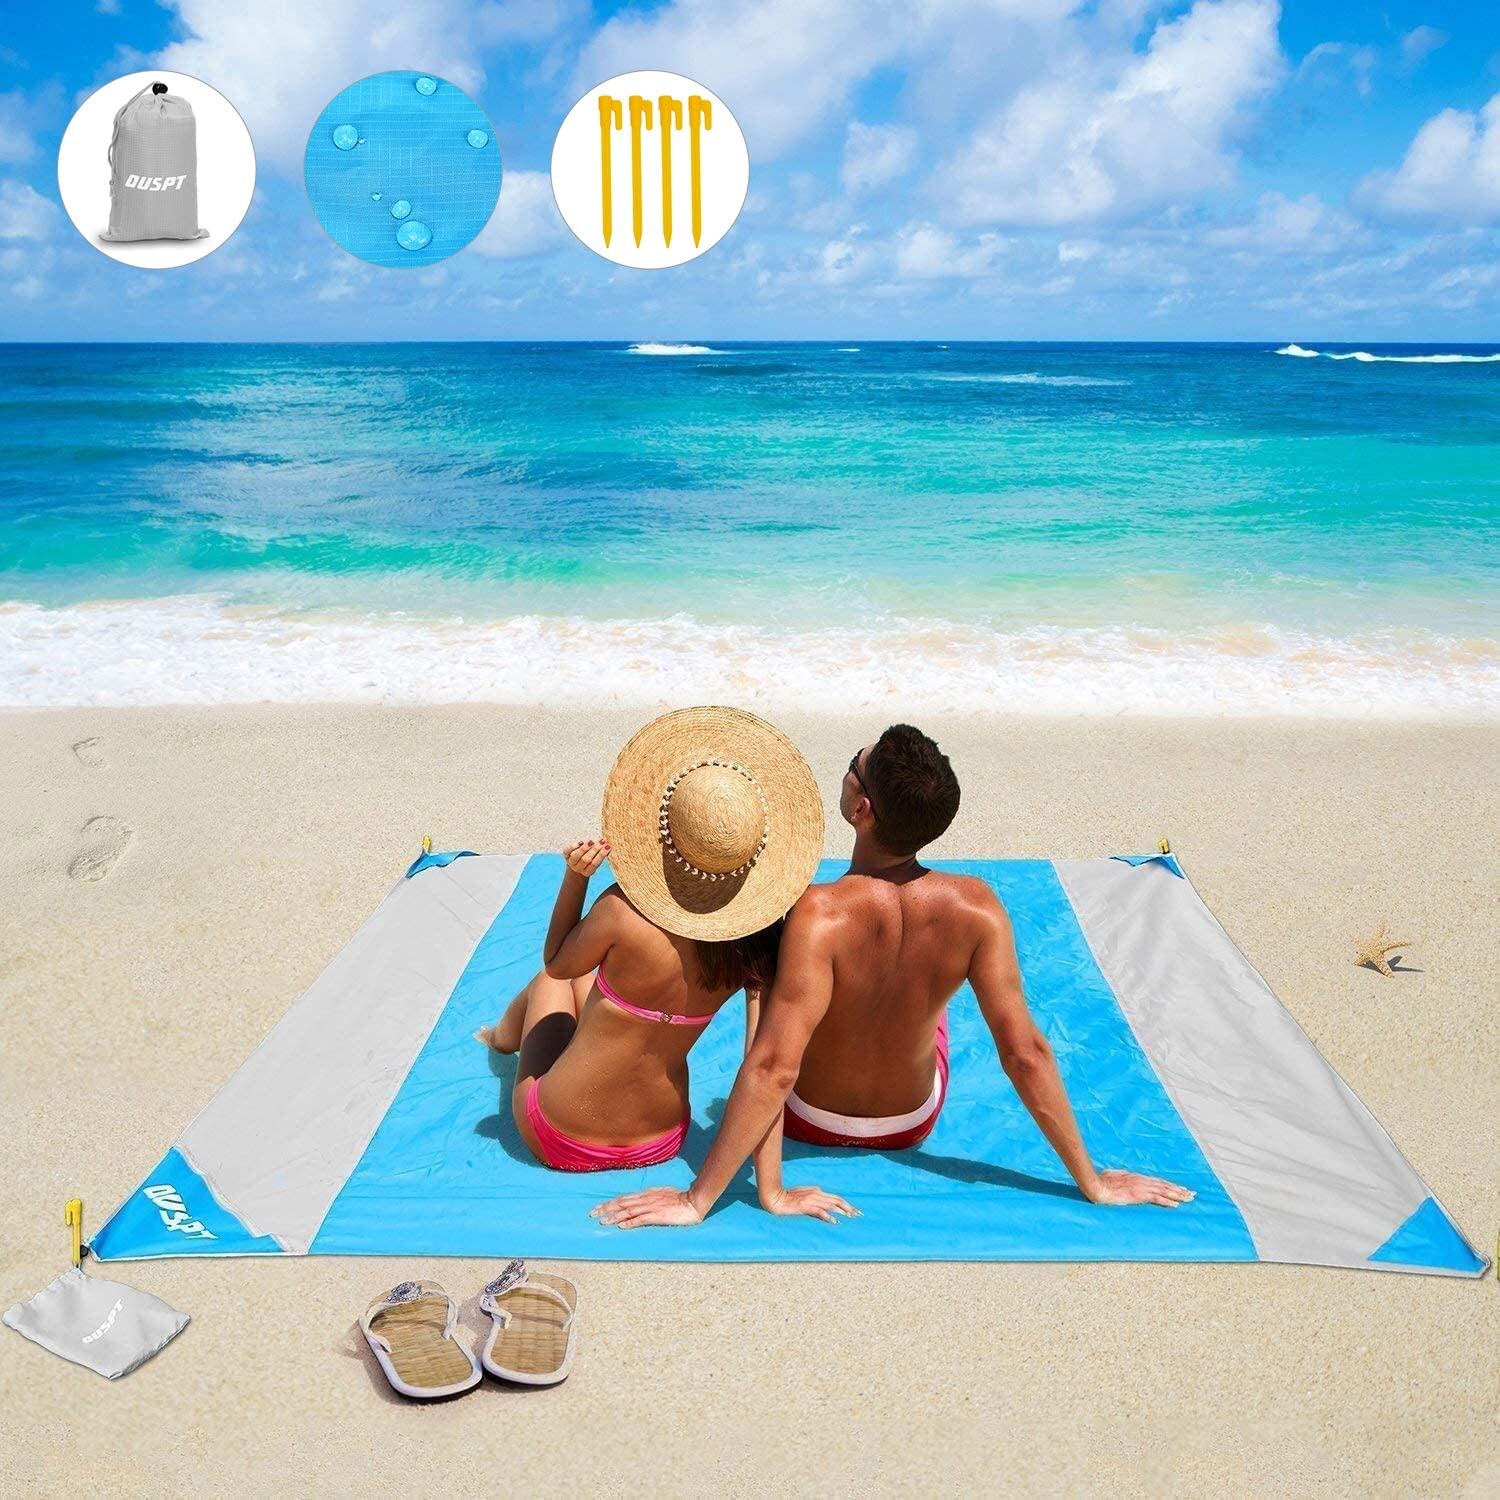 Beach Blanket Beach Mat Outdoor Picnic Blanket Large Sand Free Compact for 4-7 Persons Water Proof And Quick Drying Beach Mat Mady by Premium Nylon Pocket Picnic Sheet For Outdoor Travel 78 X 81